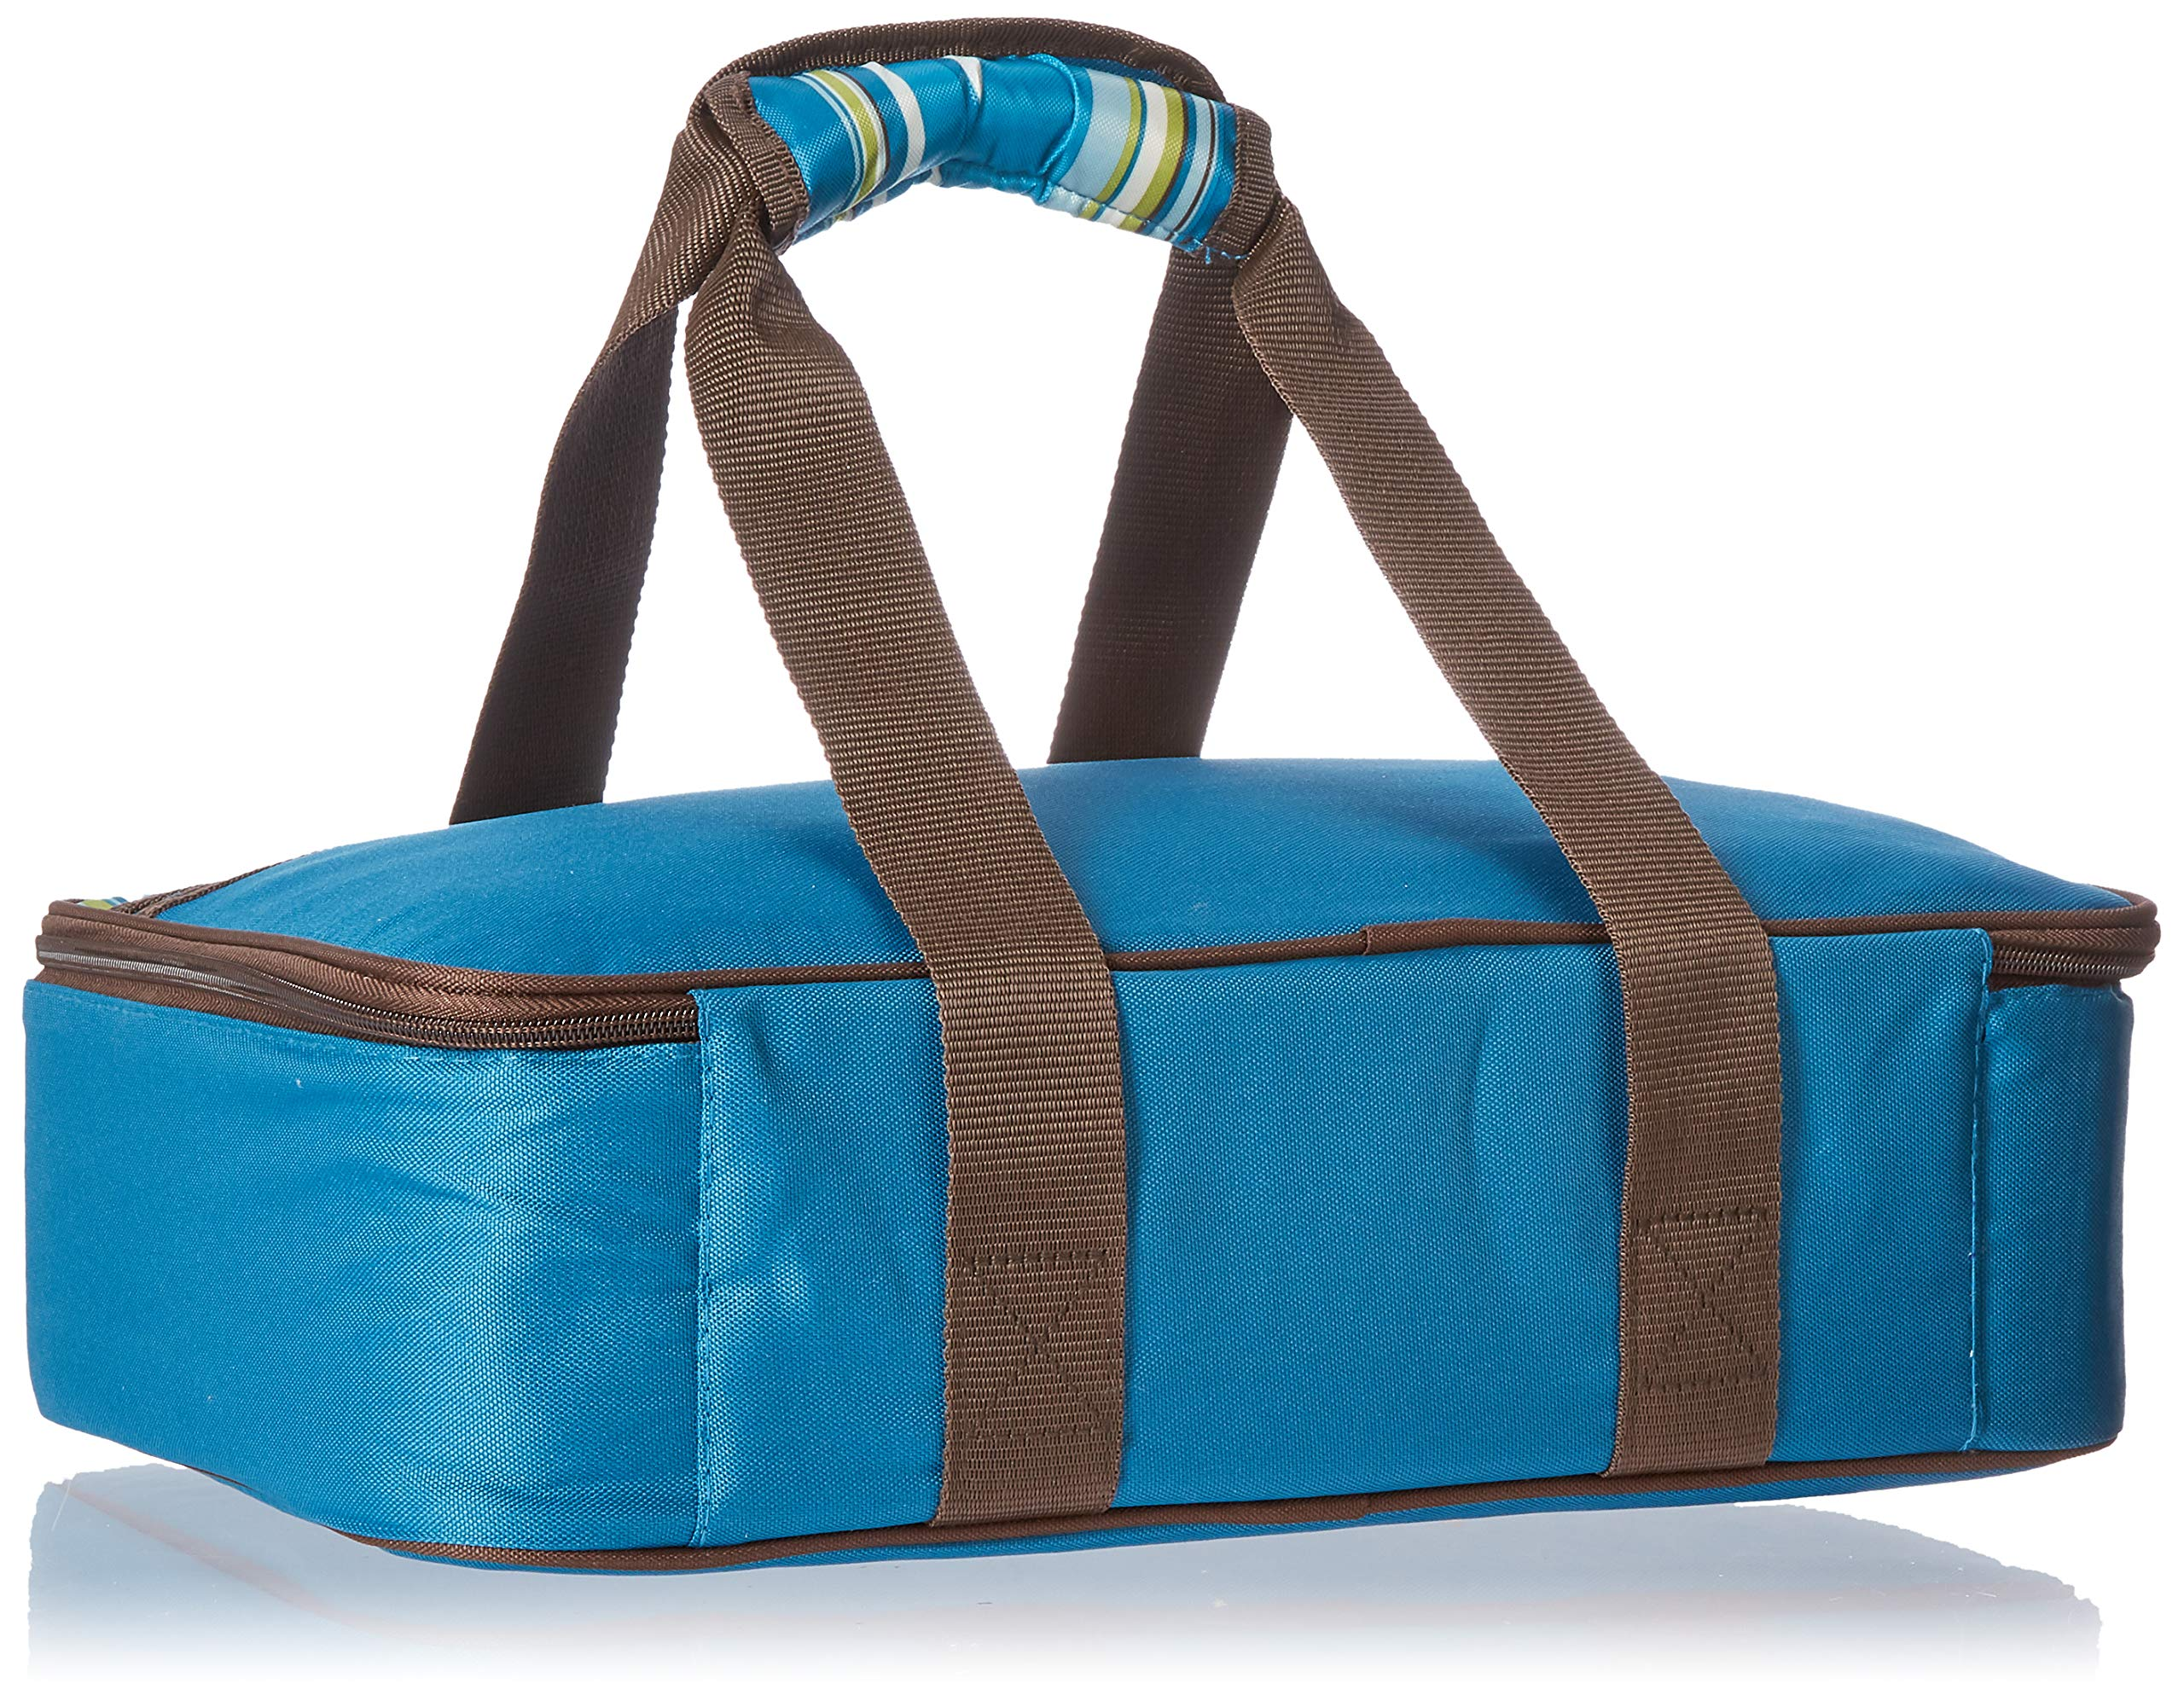 Rachael Ray Lasagna Lugger, Insulated Casserole Carrier for Potluck Parties, Picnics, Tailgates - Fits 9''x13'' Baking Dish, Marine Blue Stripes by Rachael Ray (Image #2)